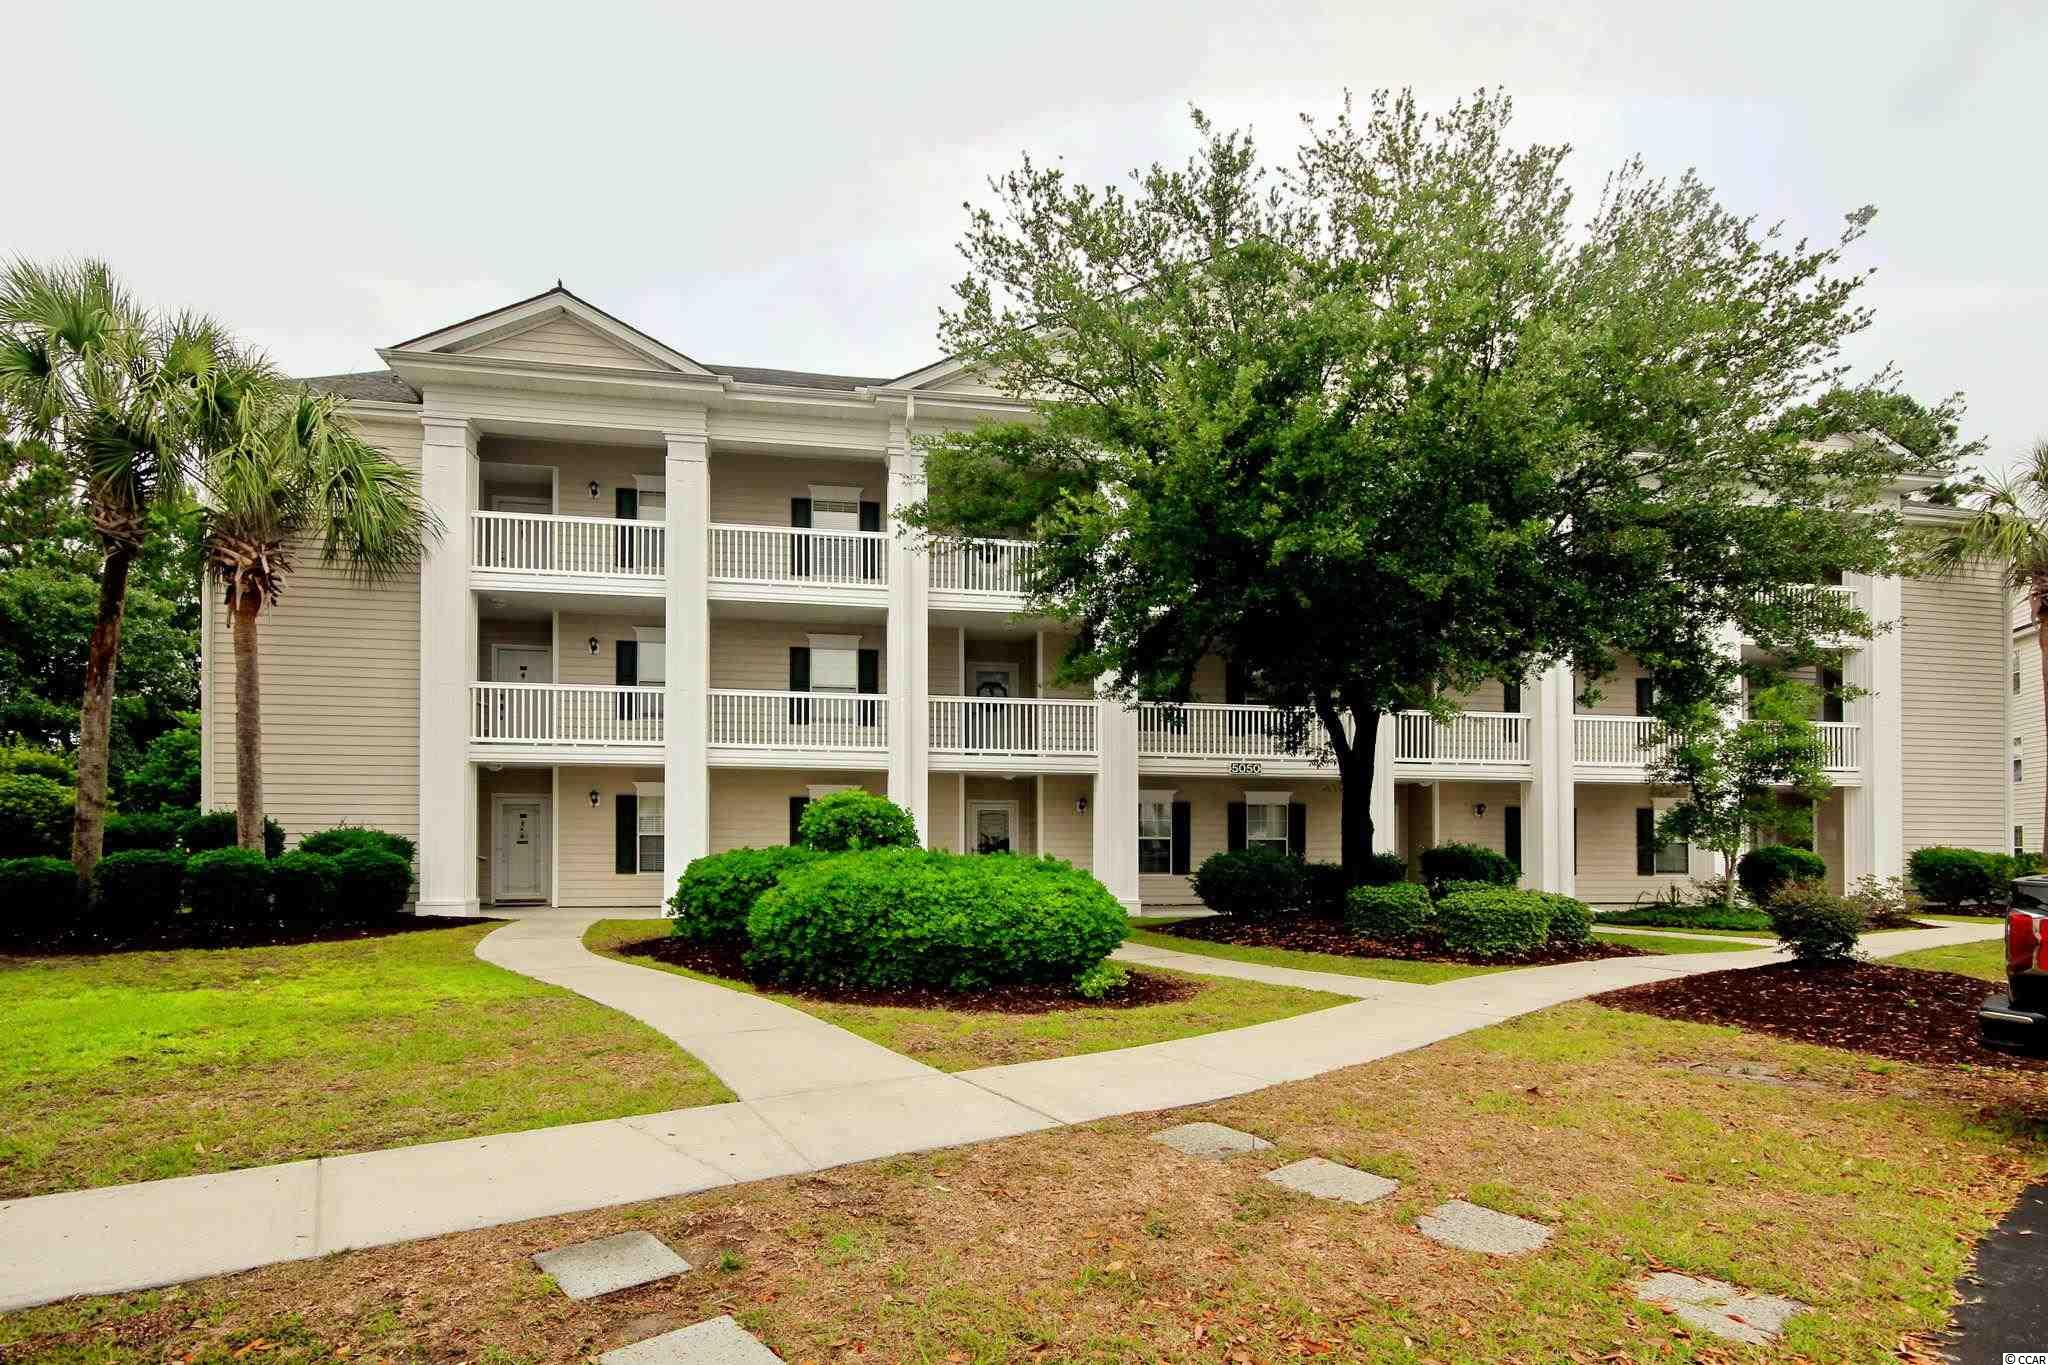 Welcome to this beautiful updated condo overlooking the Wizard Golf Course. There are many upgrades including new kitchen appliances, hot water heater, HVAC was installed in 2019. There is plenty of storage and closets. There is a pool and grilling area to enjoy and relax at. You are close to all your conveniences and a short ride to the beach.